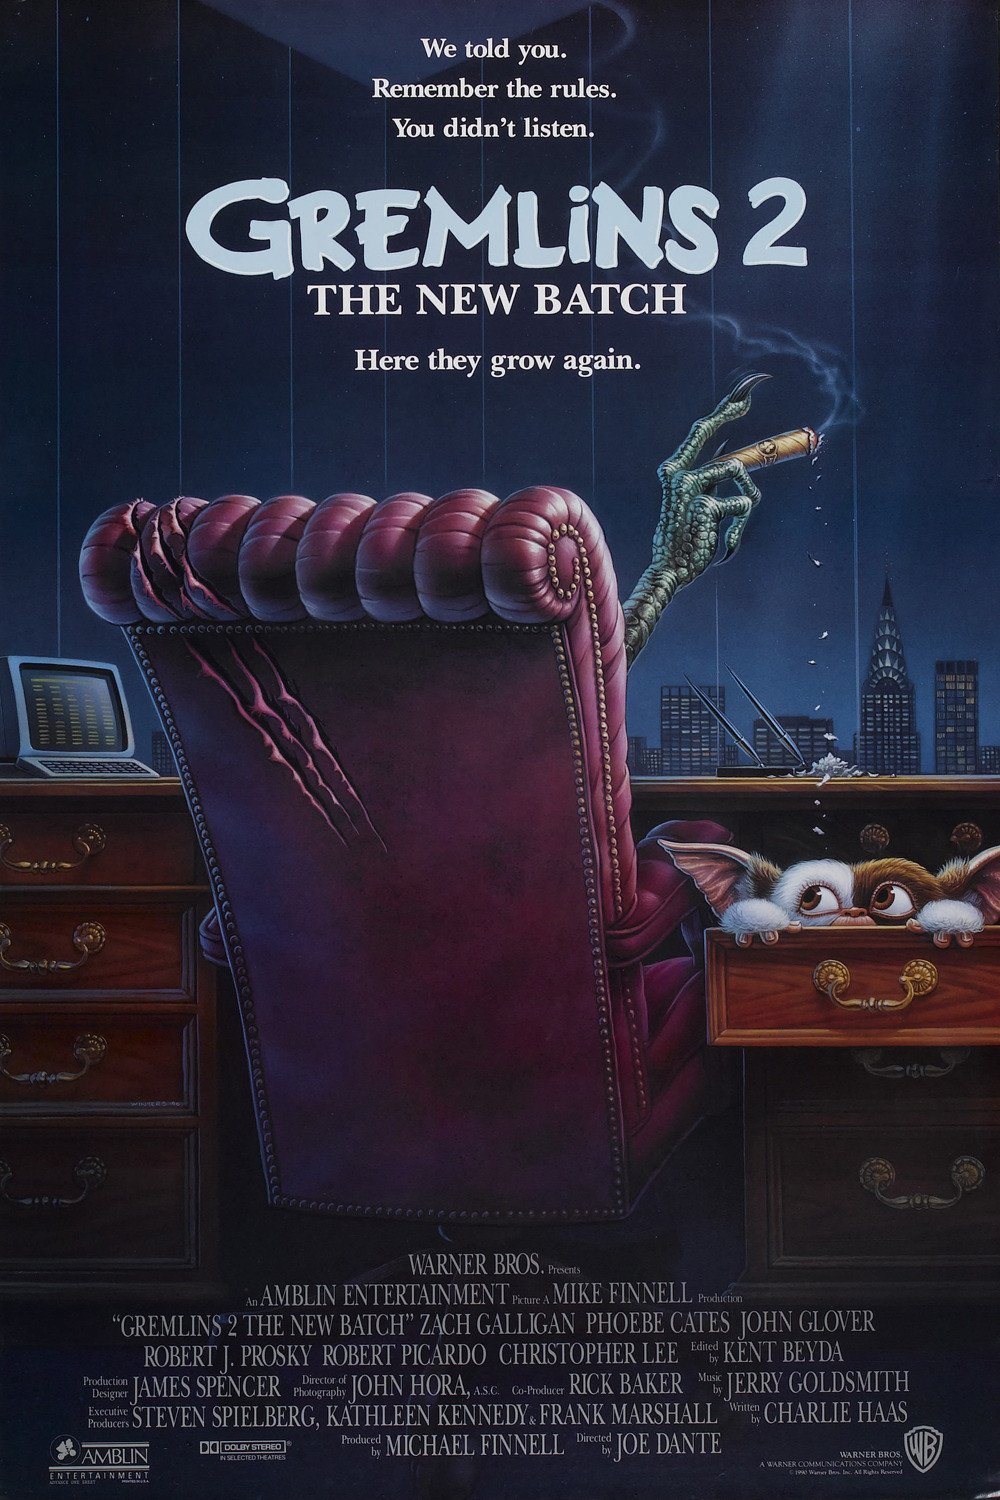 Gremlins 2 : The New Batch (1990) Original A4 Movie Poster Print (Reprint:1770) FREE SHIPPING